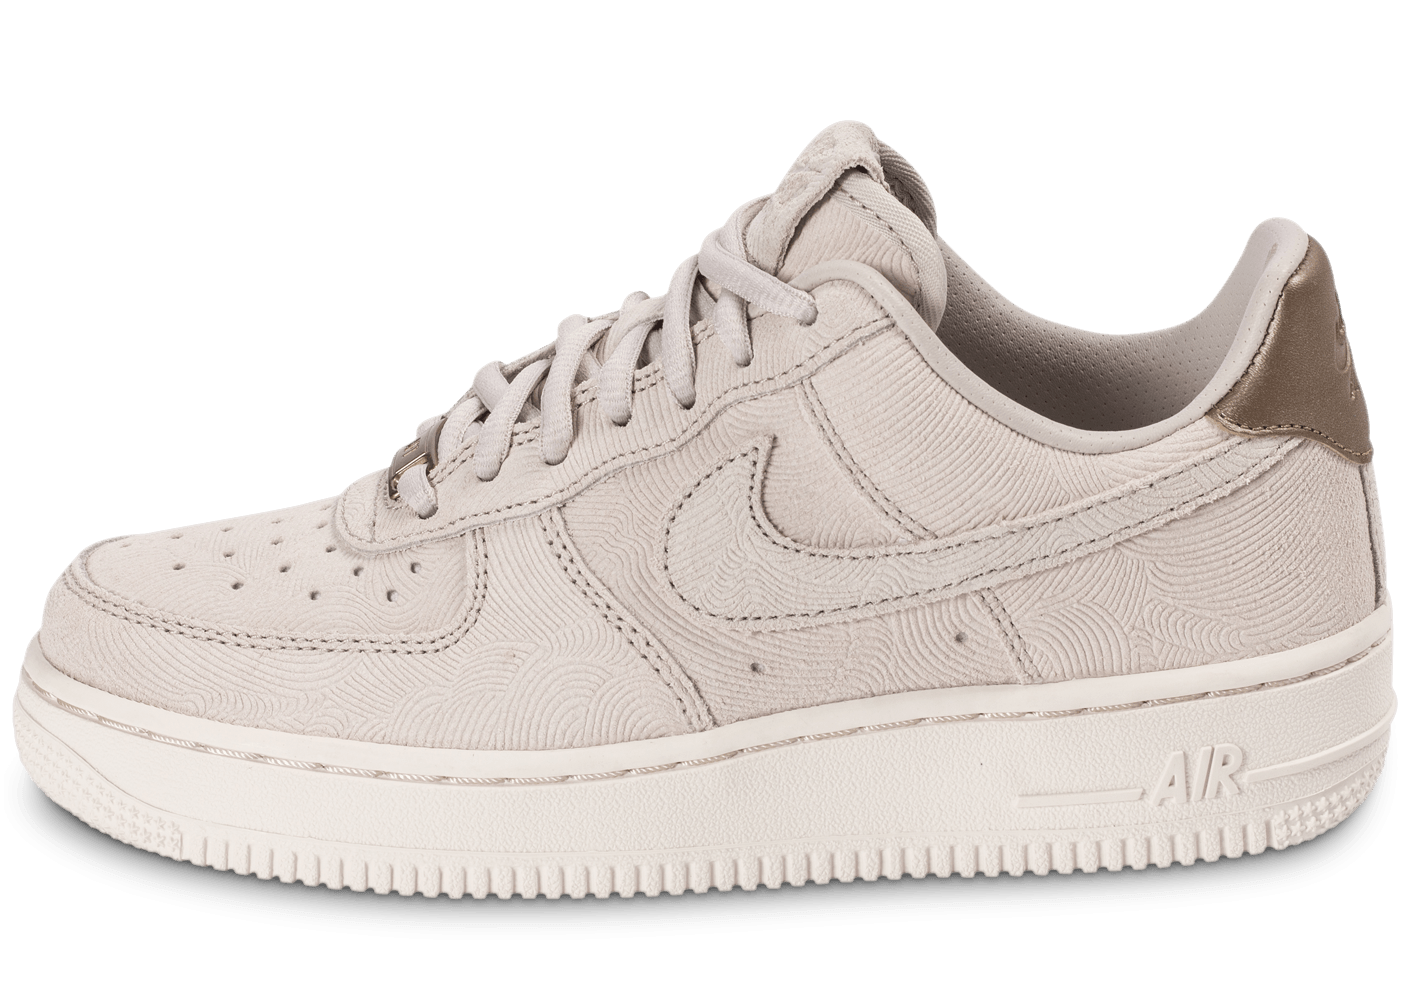 air force 1 low femme blanche et rouge